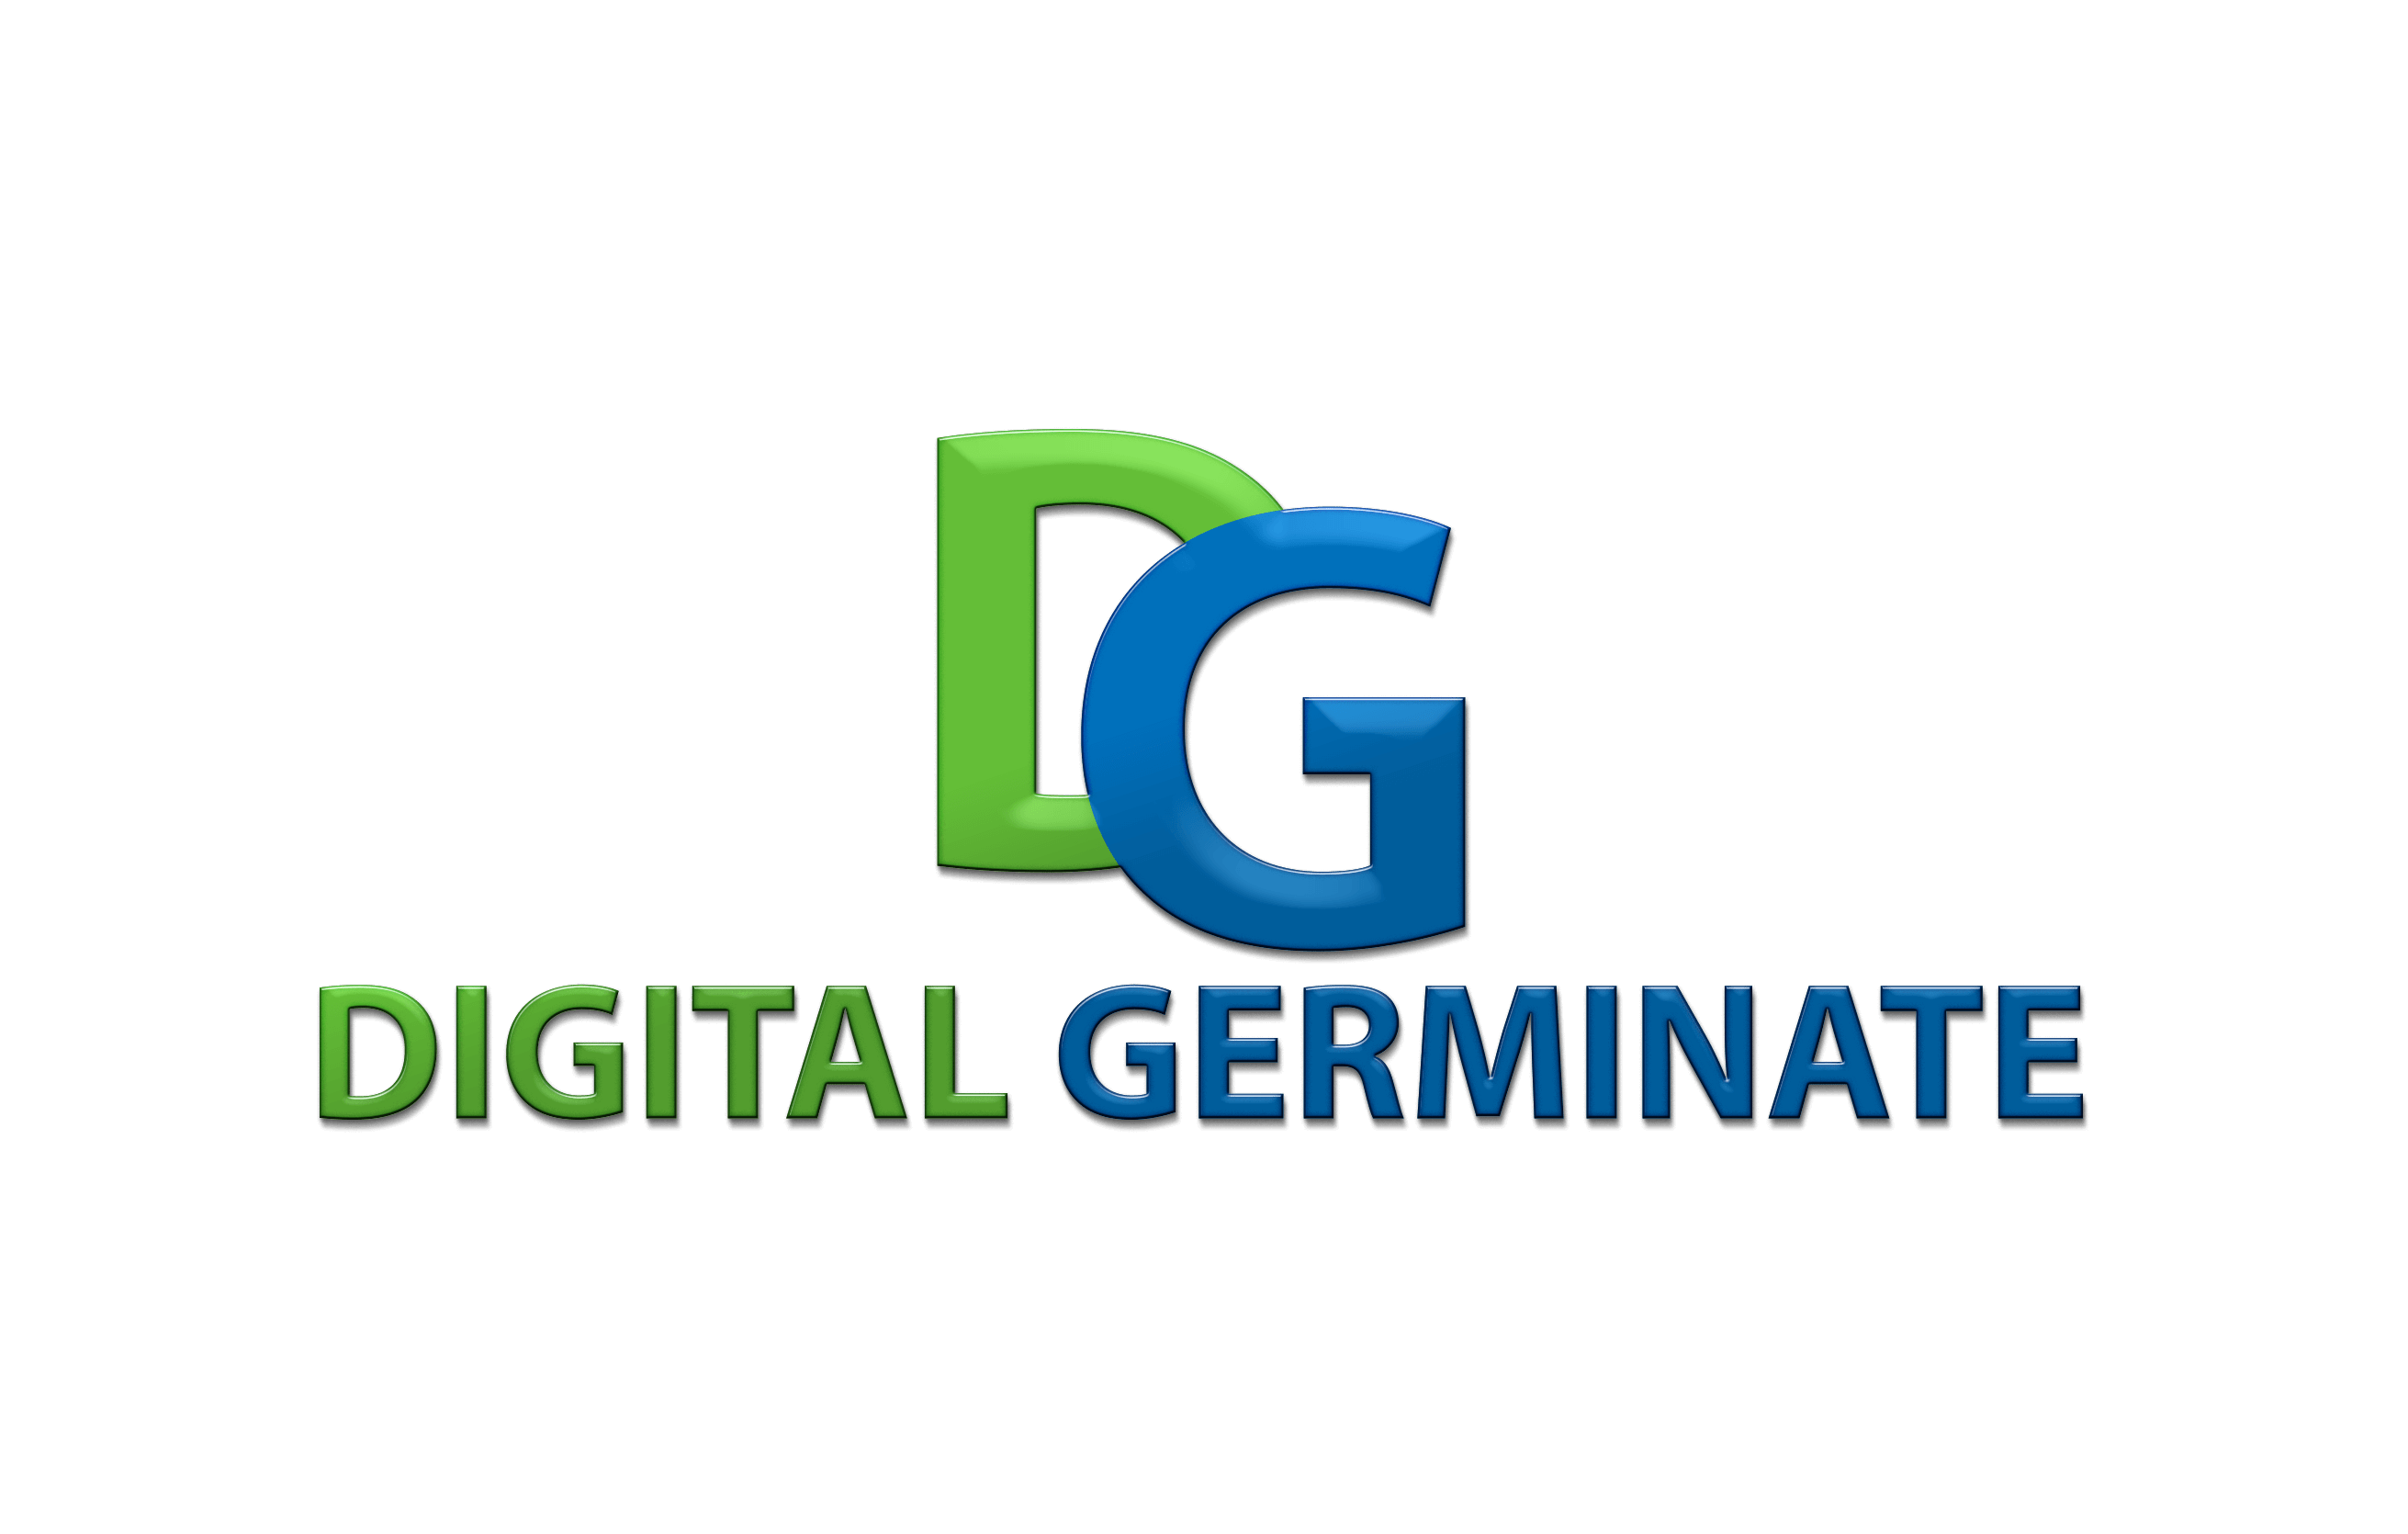 Digital Germinate